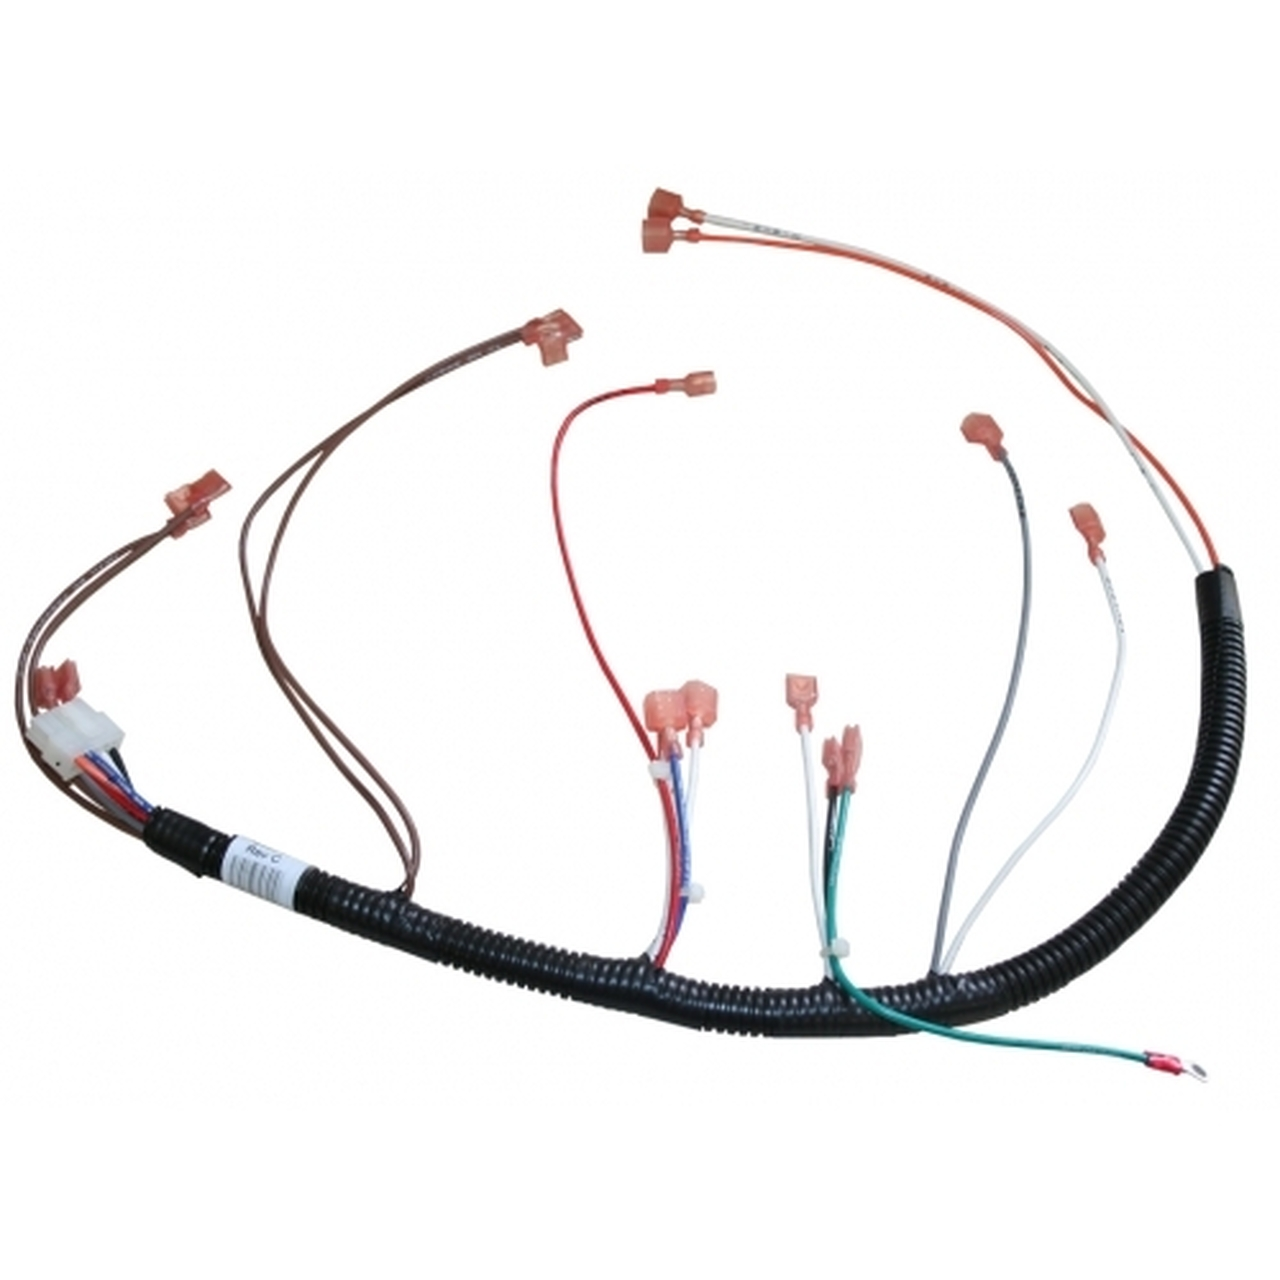 wiring harness pellet stove replacement main wiring harness for ussc model king pellet ... #3